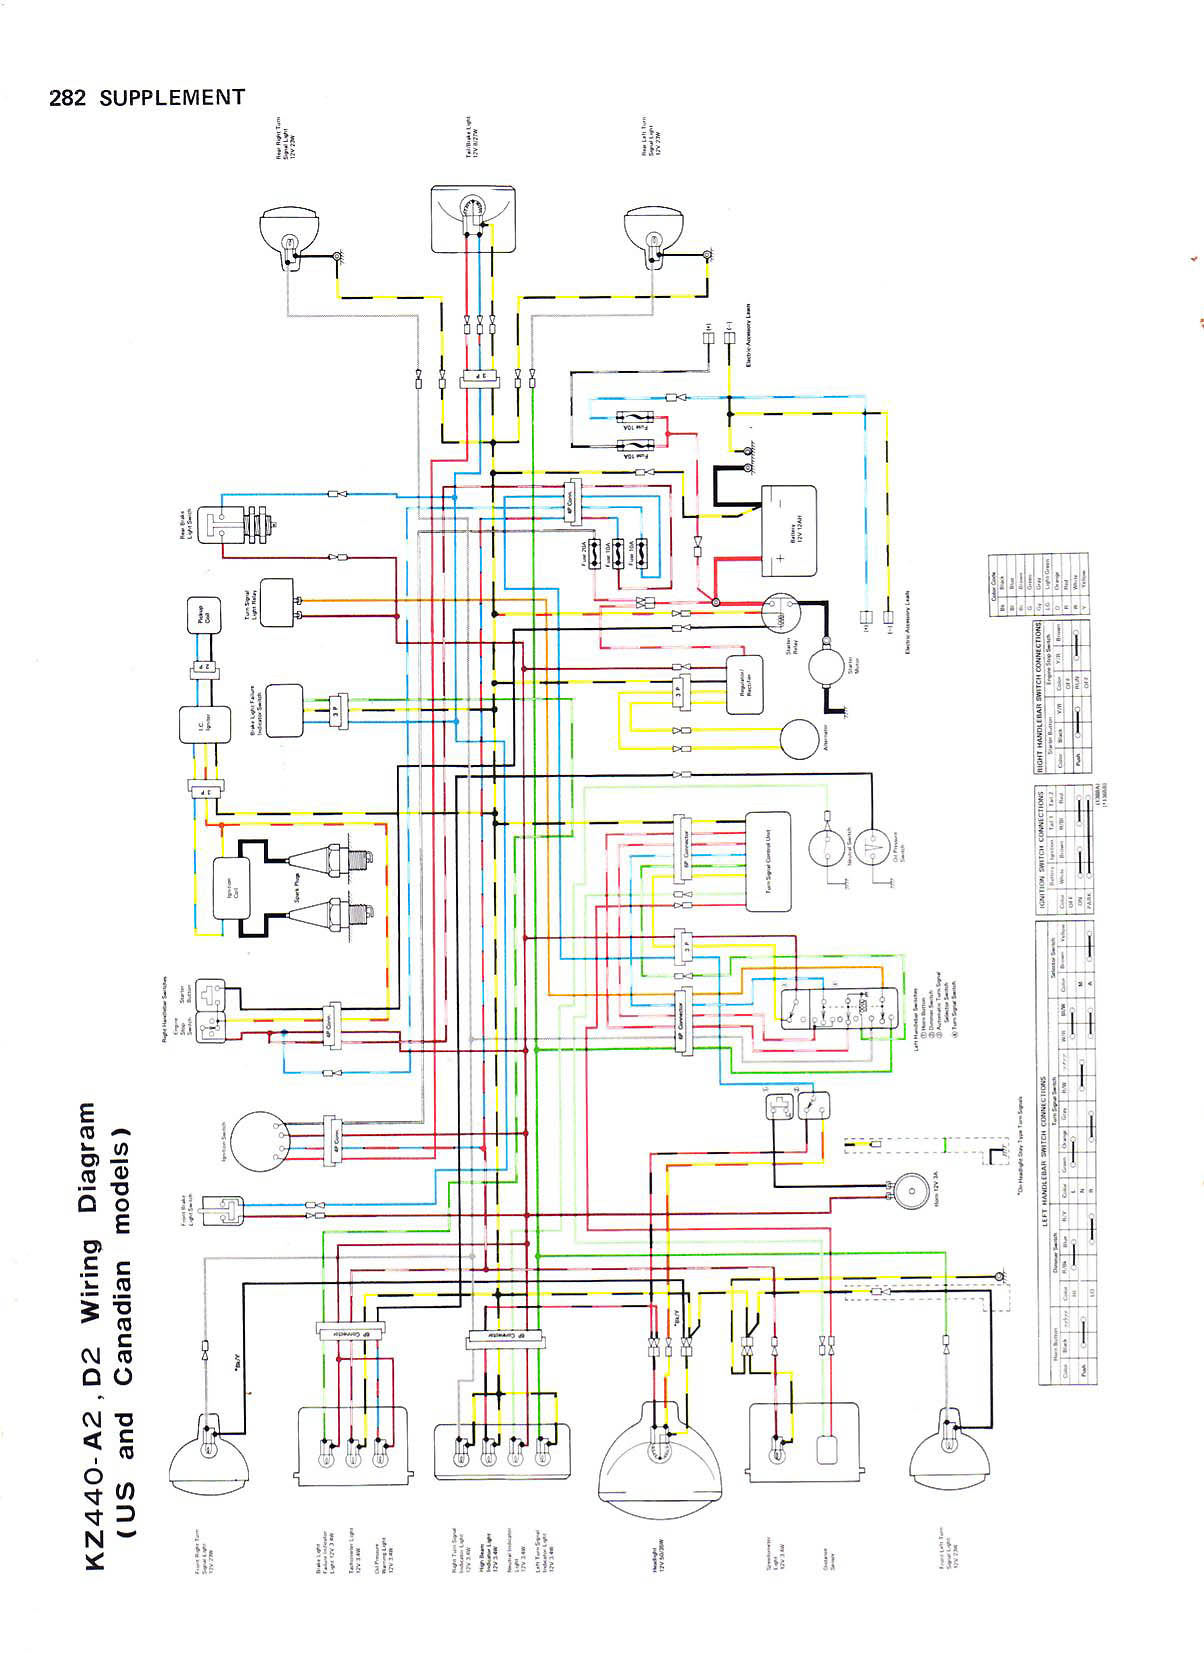 Kawasaki KZ 440 %2780 a %2782 Service Manual_Page_279 index of kz440 wiring diagrams 1980 kawasaki 440 ltd wiring diagram at bayanpartner.co